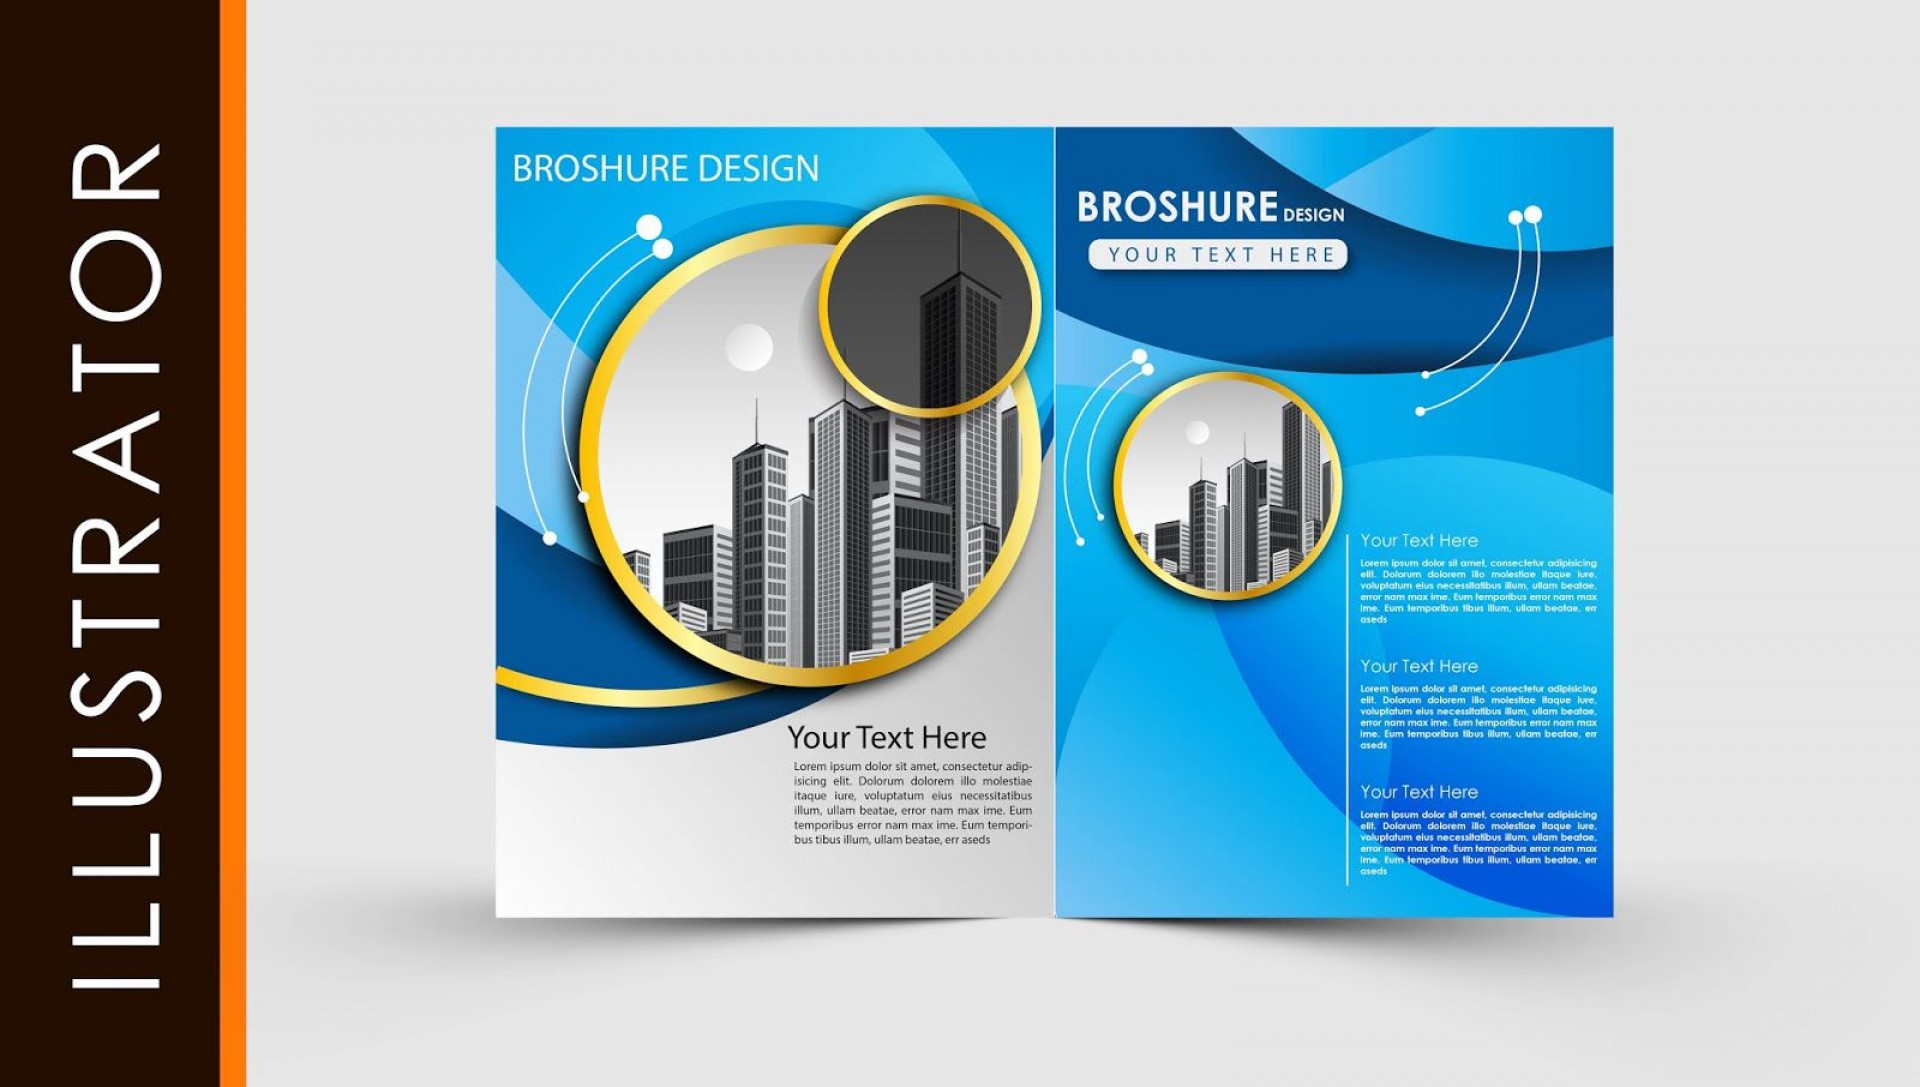 008 Breathtaking Free Brochure Template Download Image  Psd Tri Fold For Word Corporate Busines1920